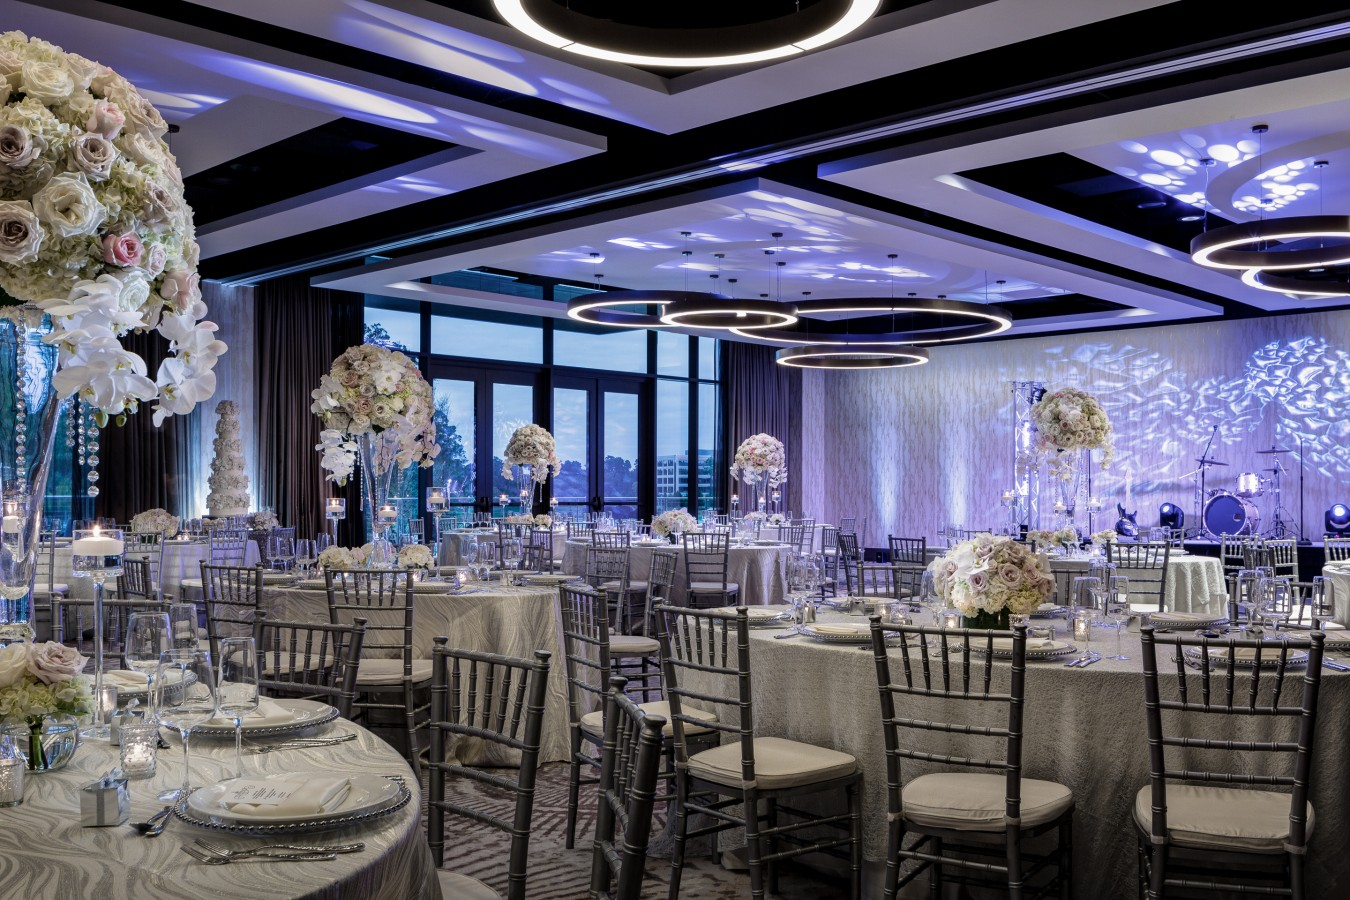 Hotel Ballroom Wedding Reception